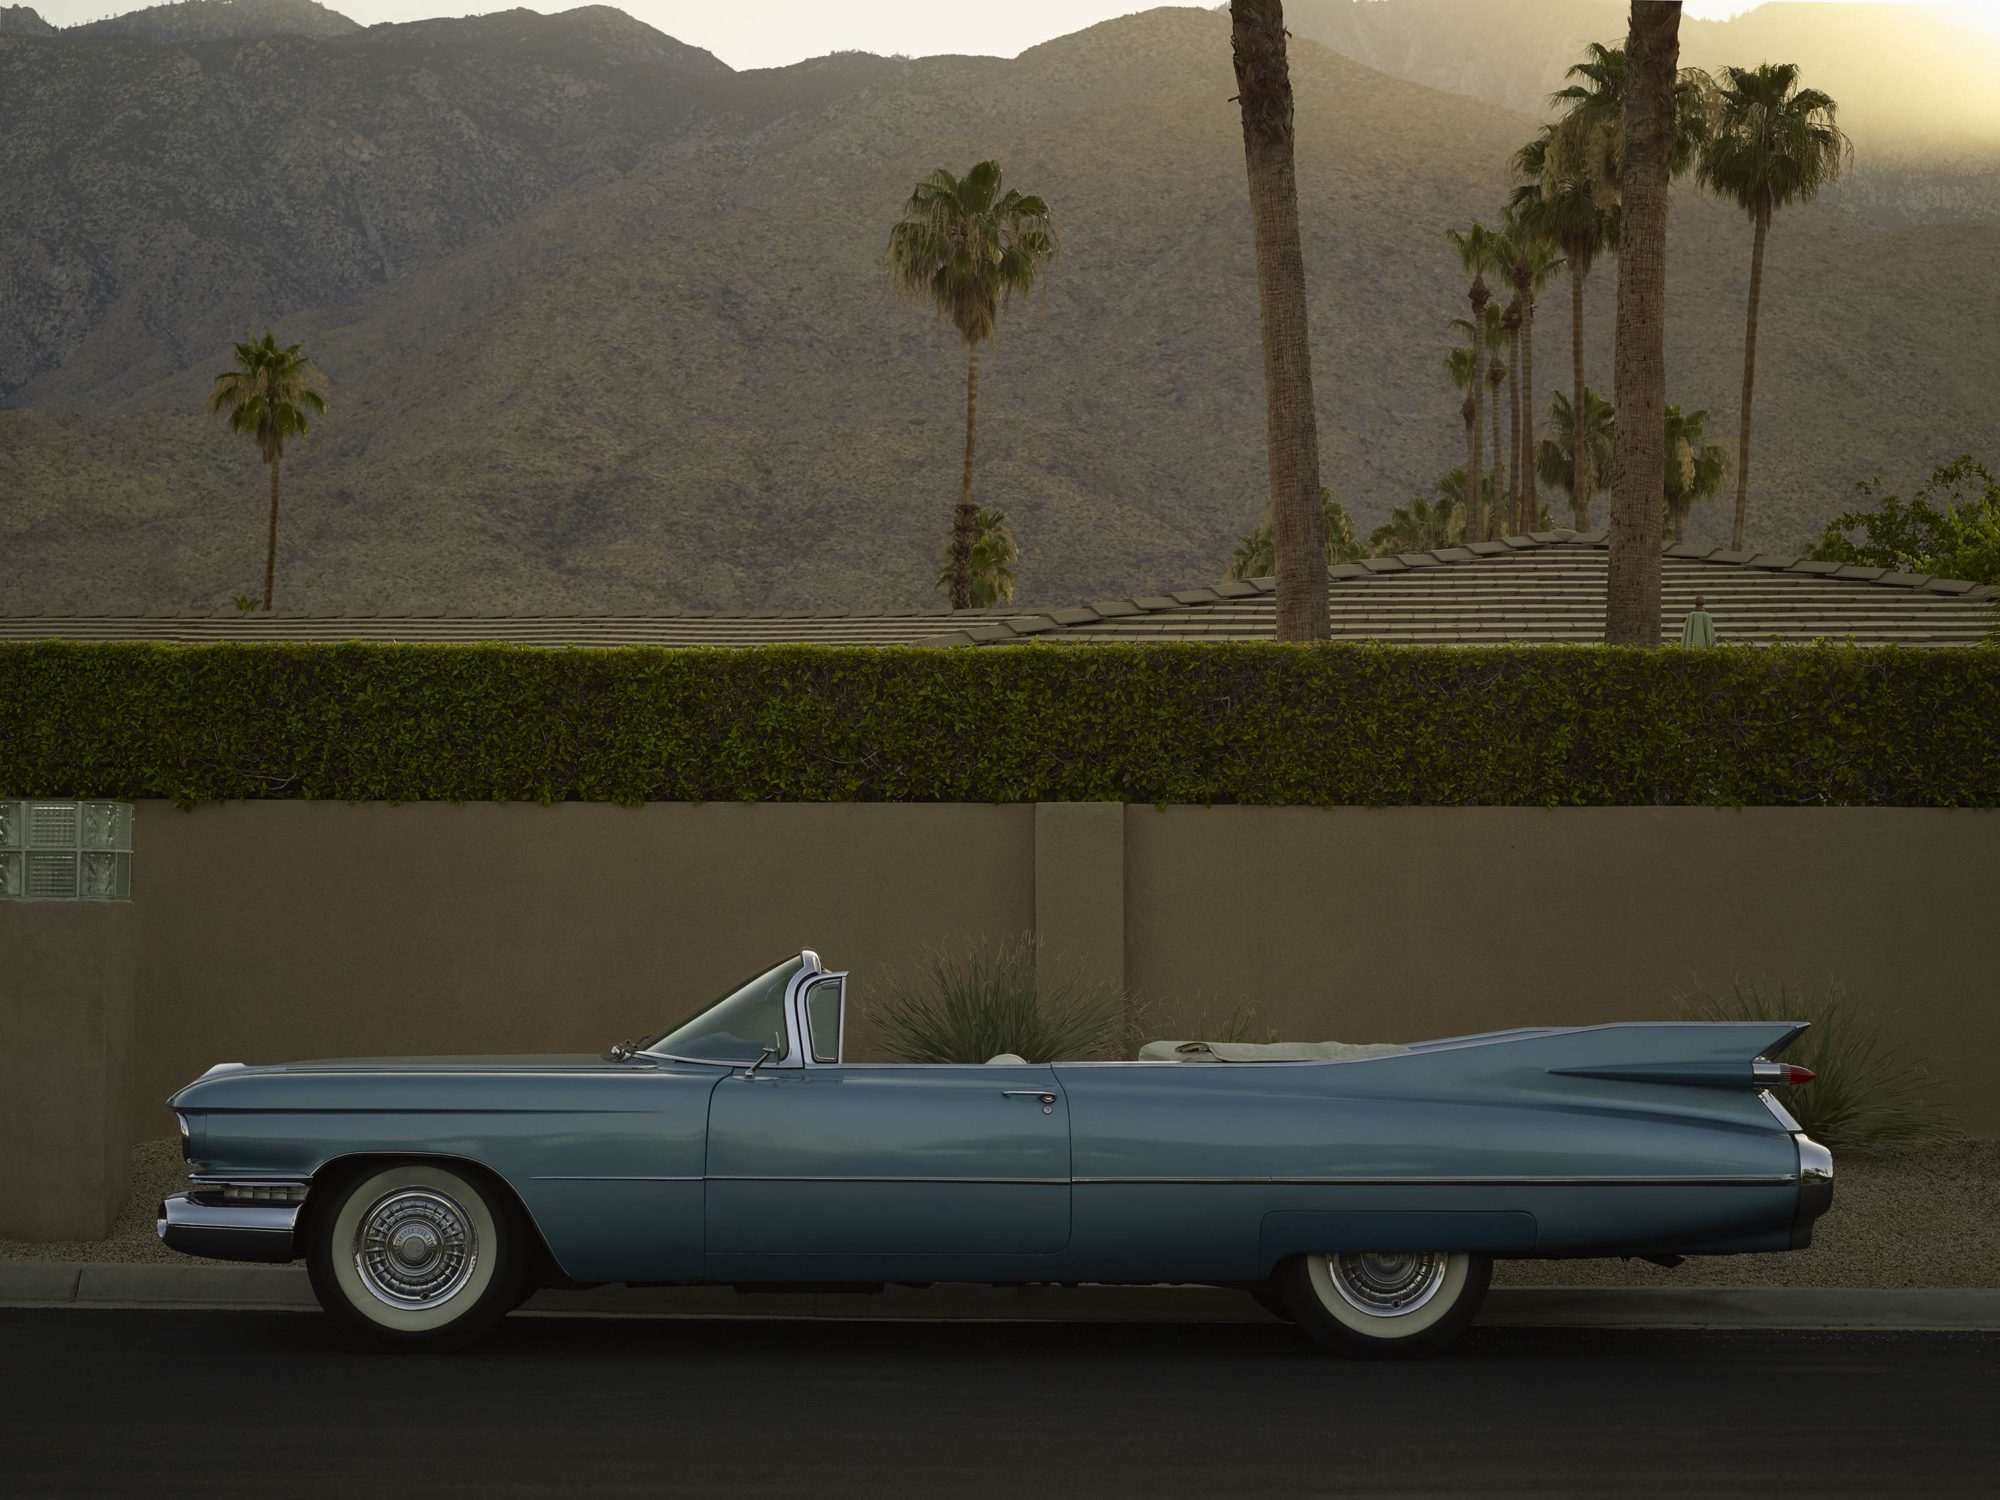 Sky Blue Cadillac - I Heart Palm Springs Collection - Fine Art Photography by Toby Dixon